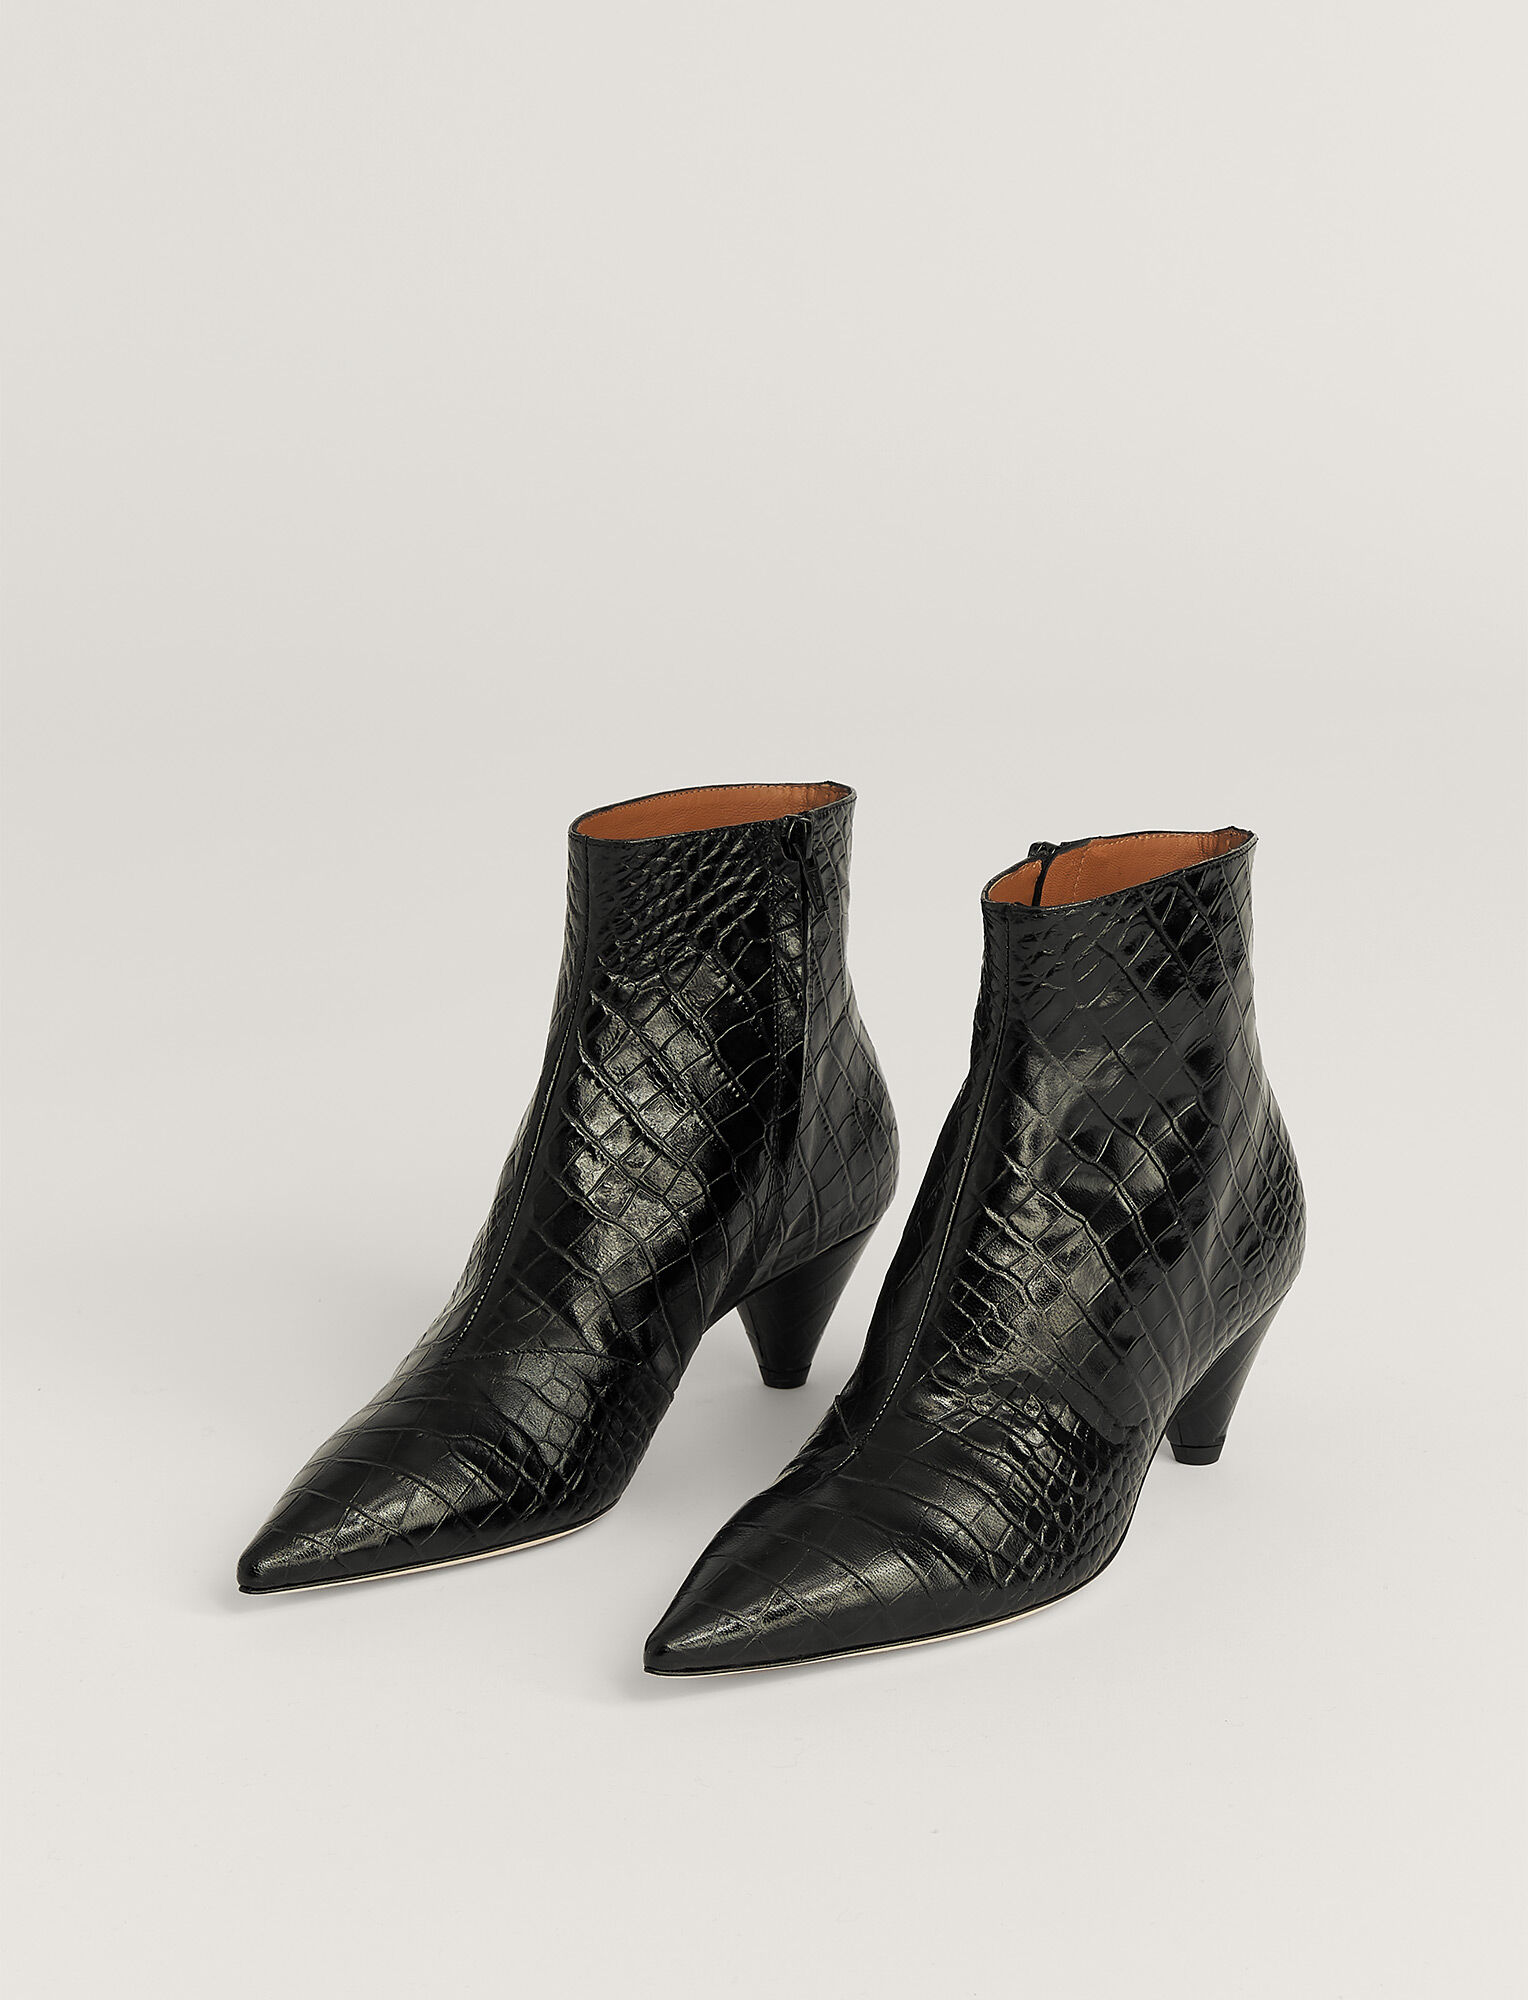 Joseph, Bottines Hanae en cuir, in BLACK